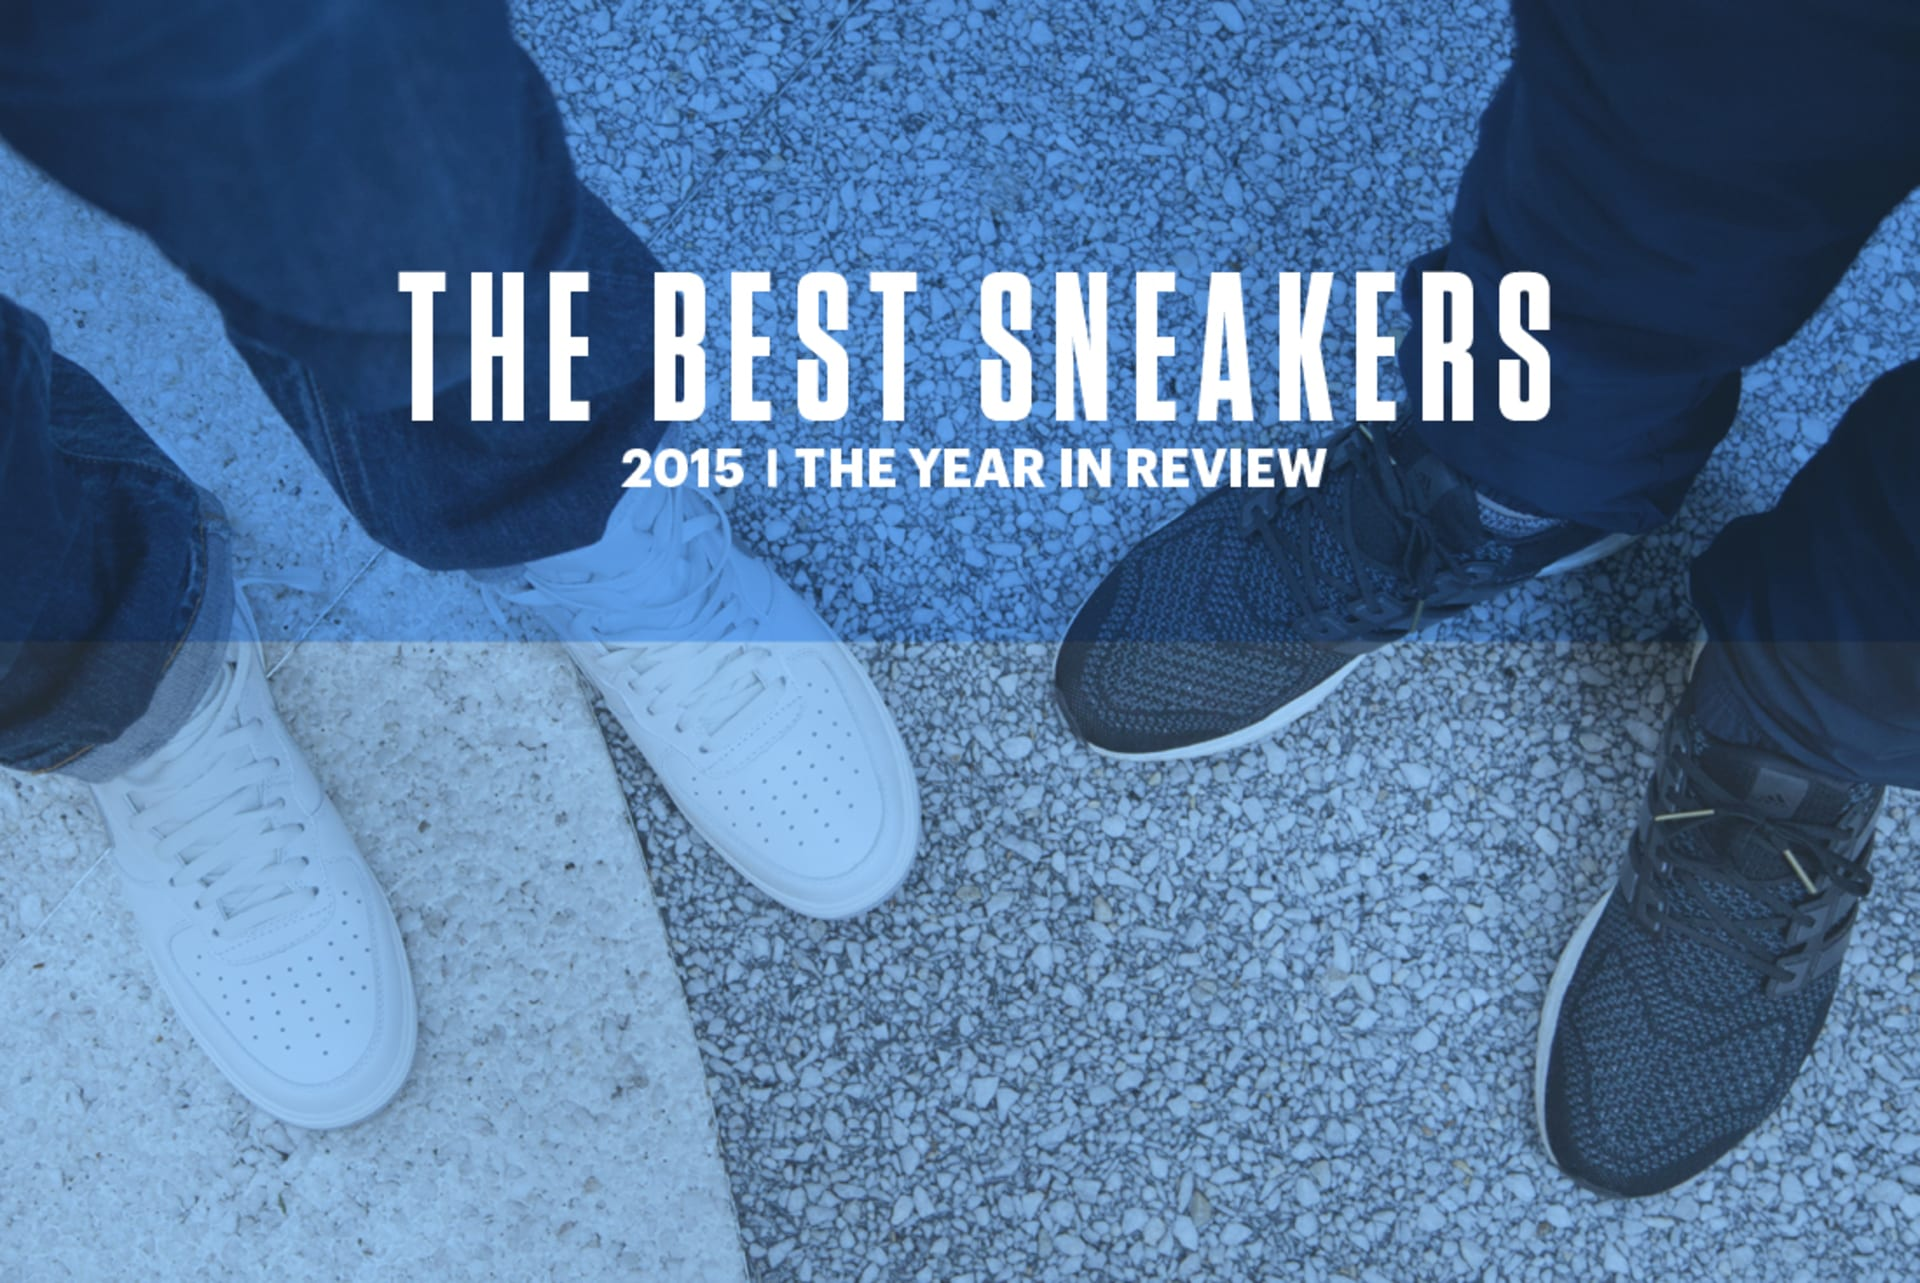 newest d2a08 a35b0 The Best Sneakers of 2015